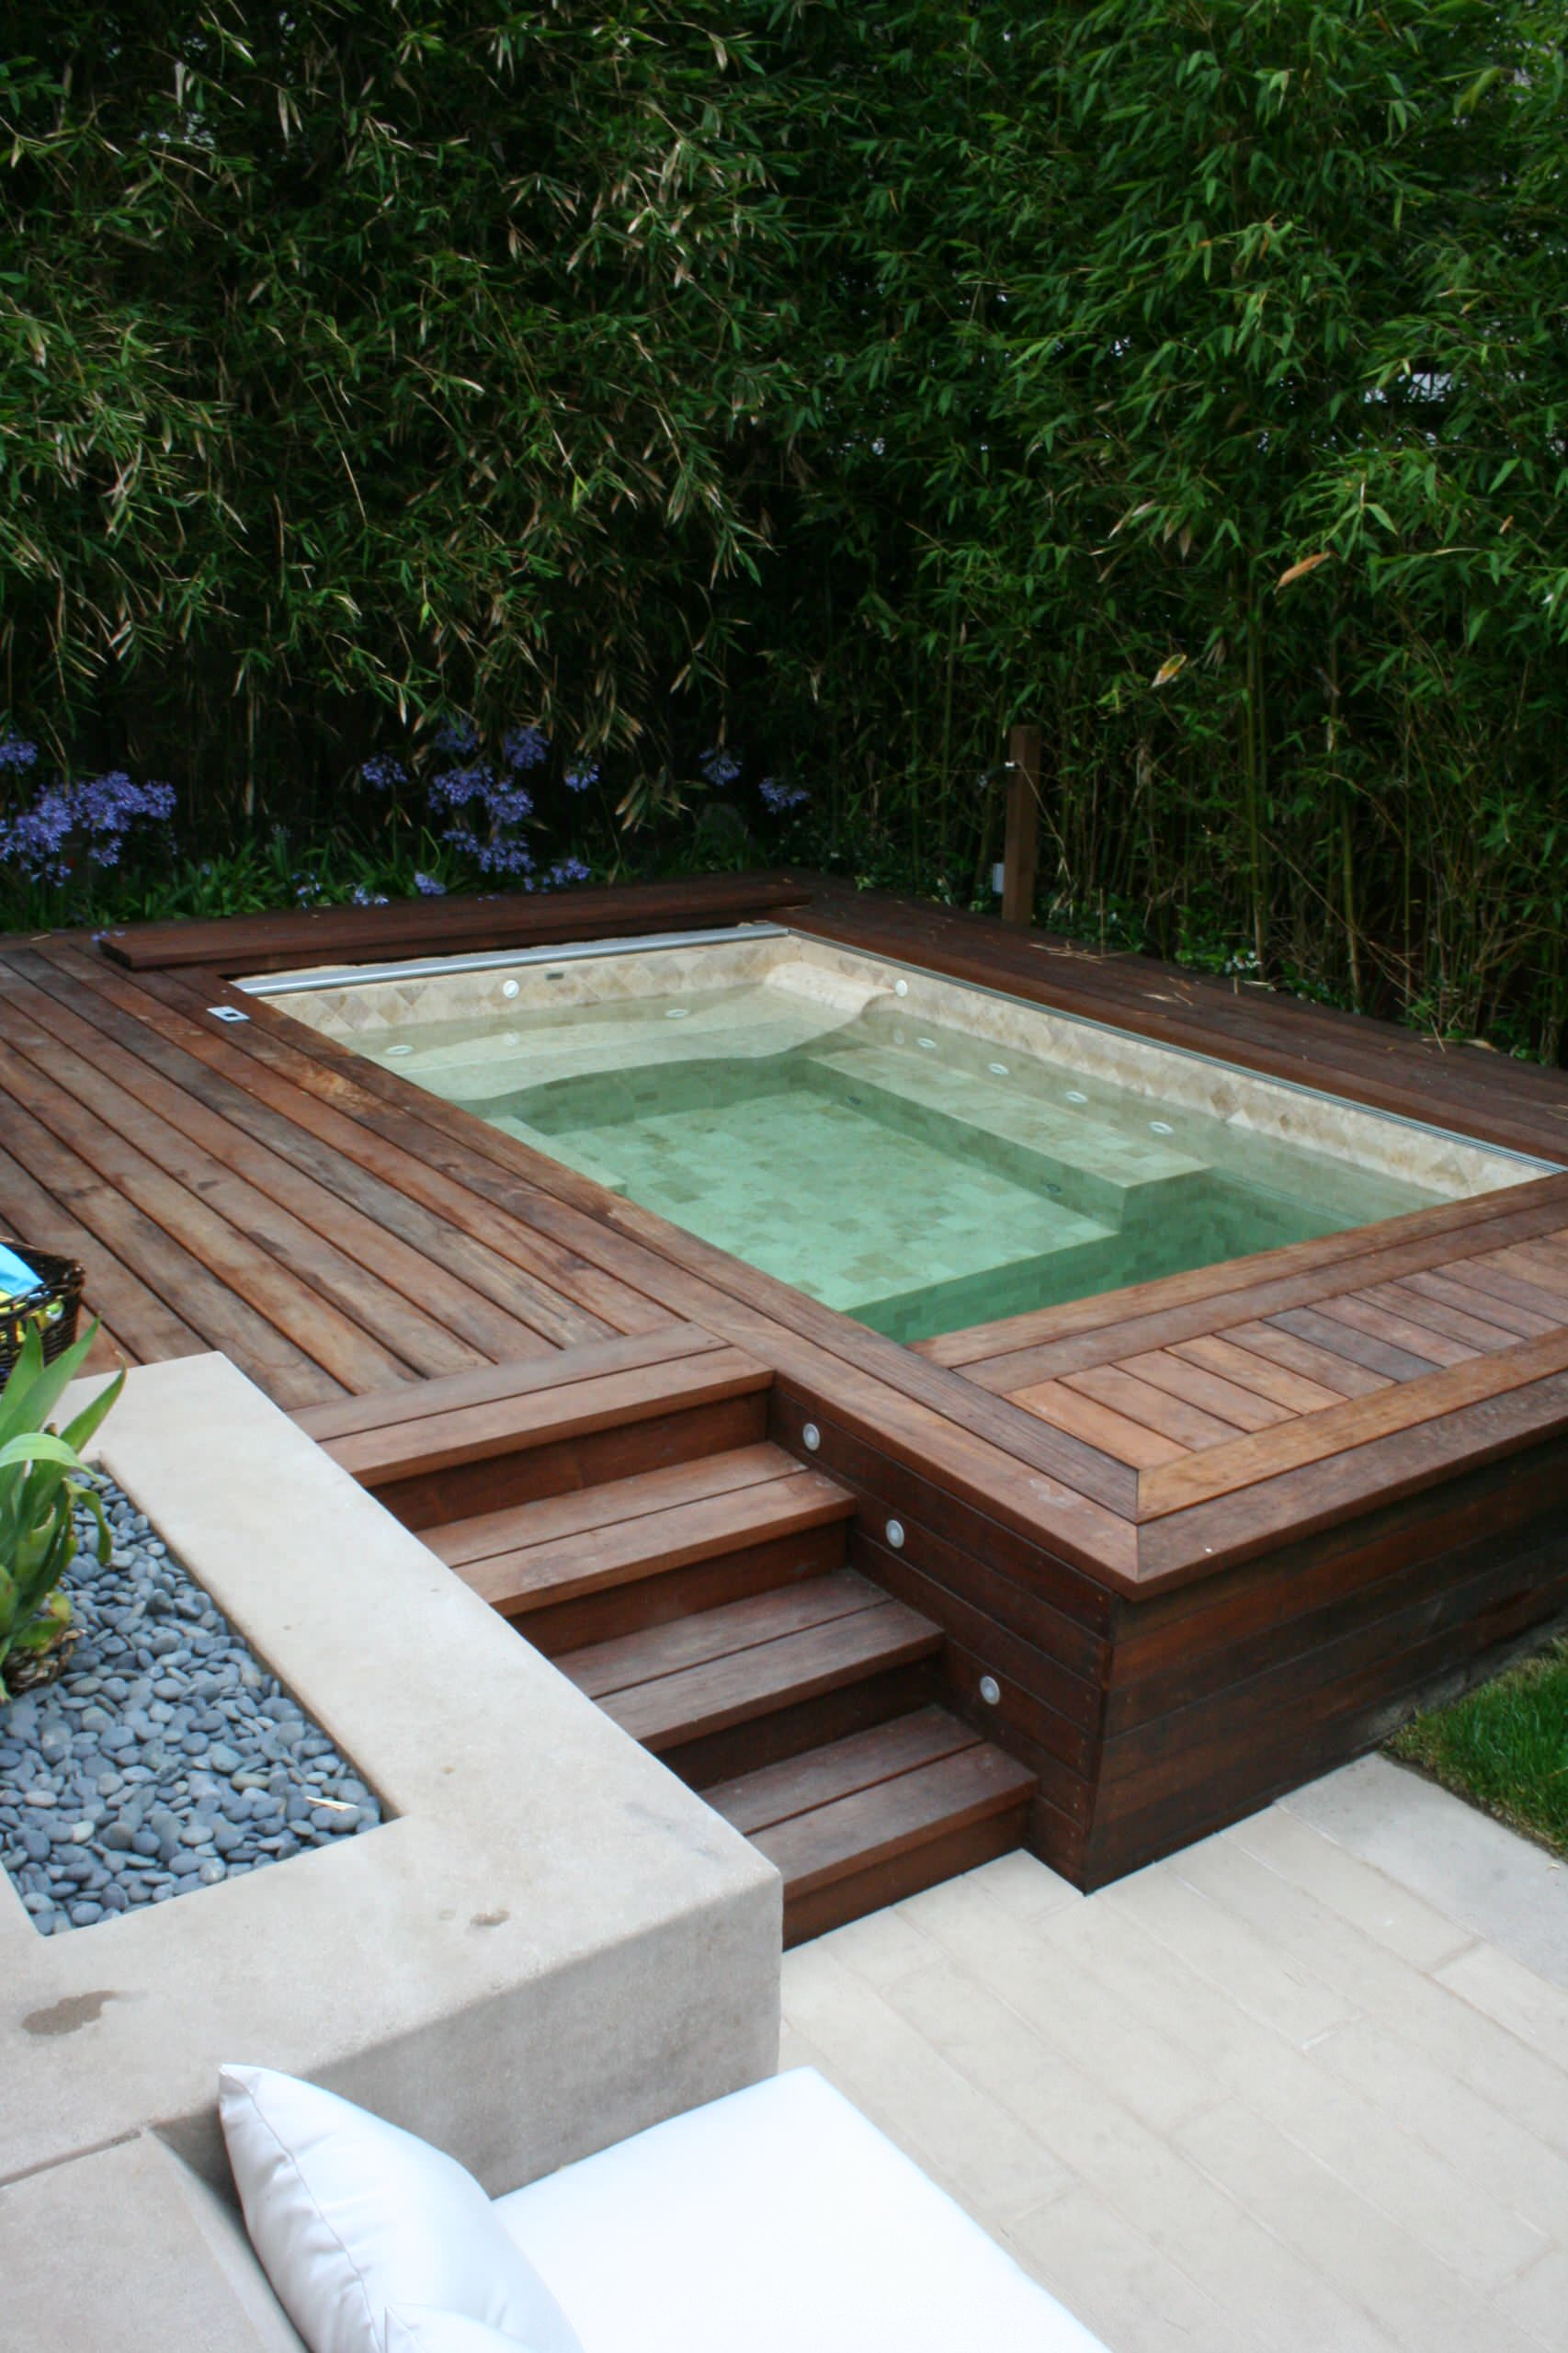 75 Beautiful Pool Pictures Ideas March 2021 Houzz